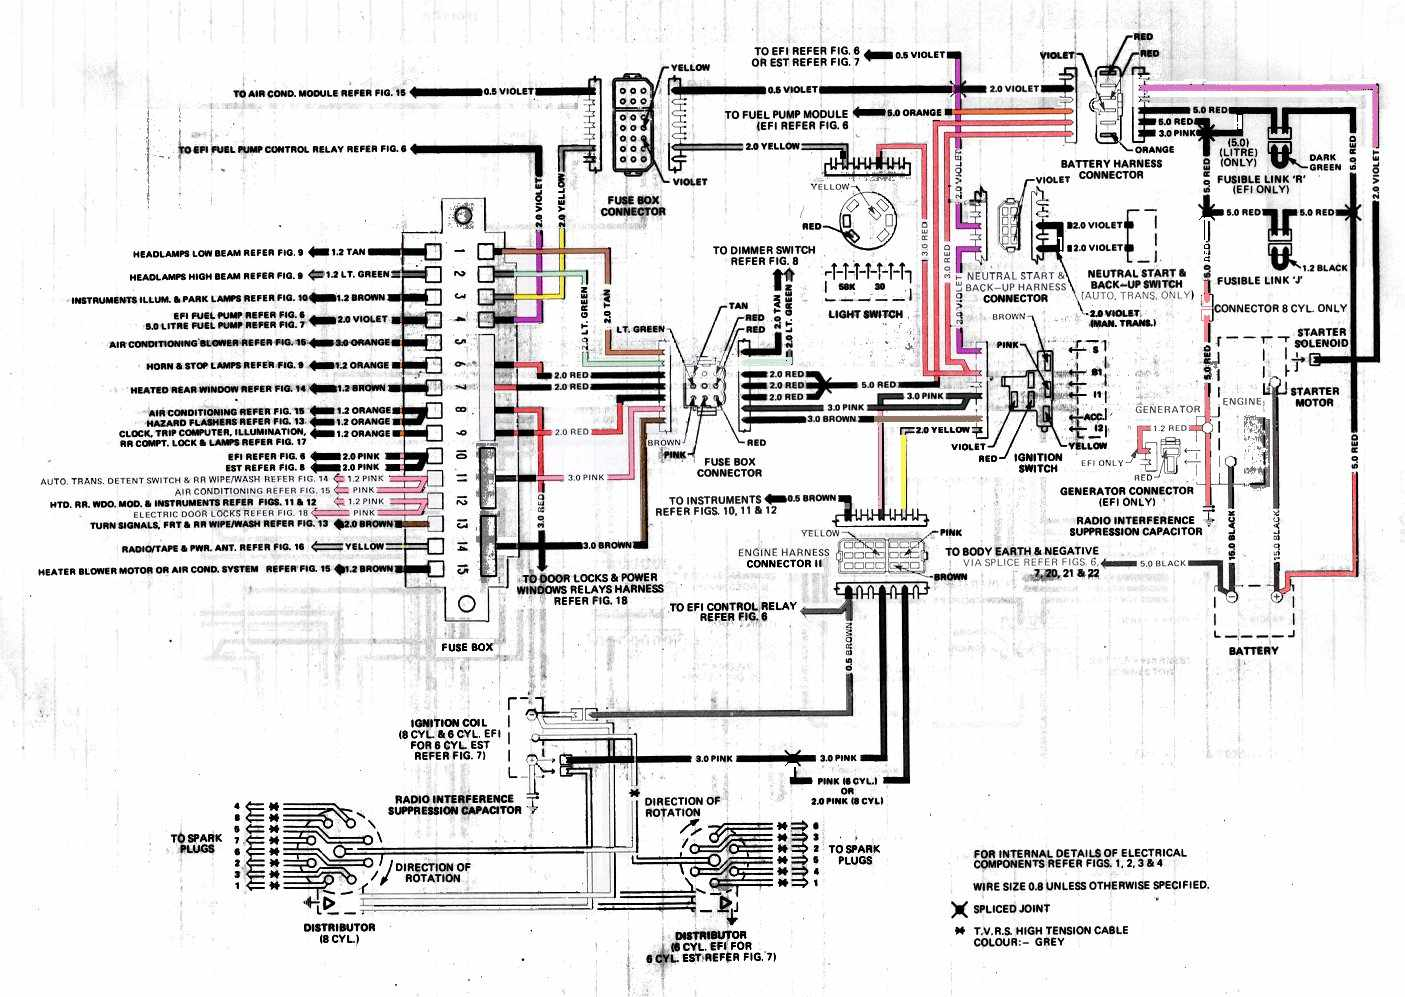 Holden+VK+Commodore+Generator+Electrical+Wiring+Diagram?resize\\\\\\\=665%2C472 holden vk wiring diagram holden wiring diagrams instruction hj holden wiring diagram at n-0.co